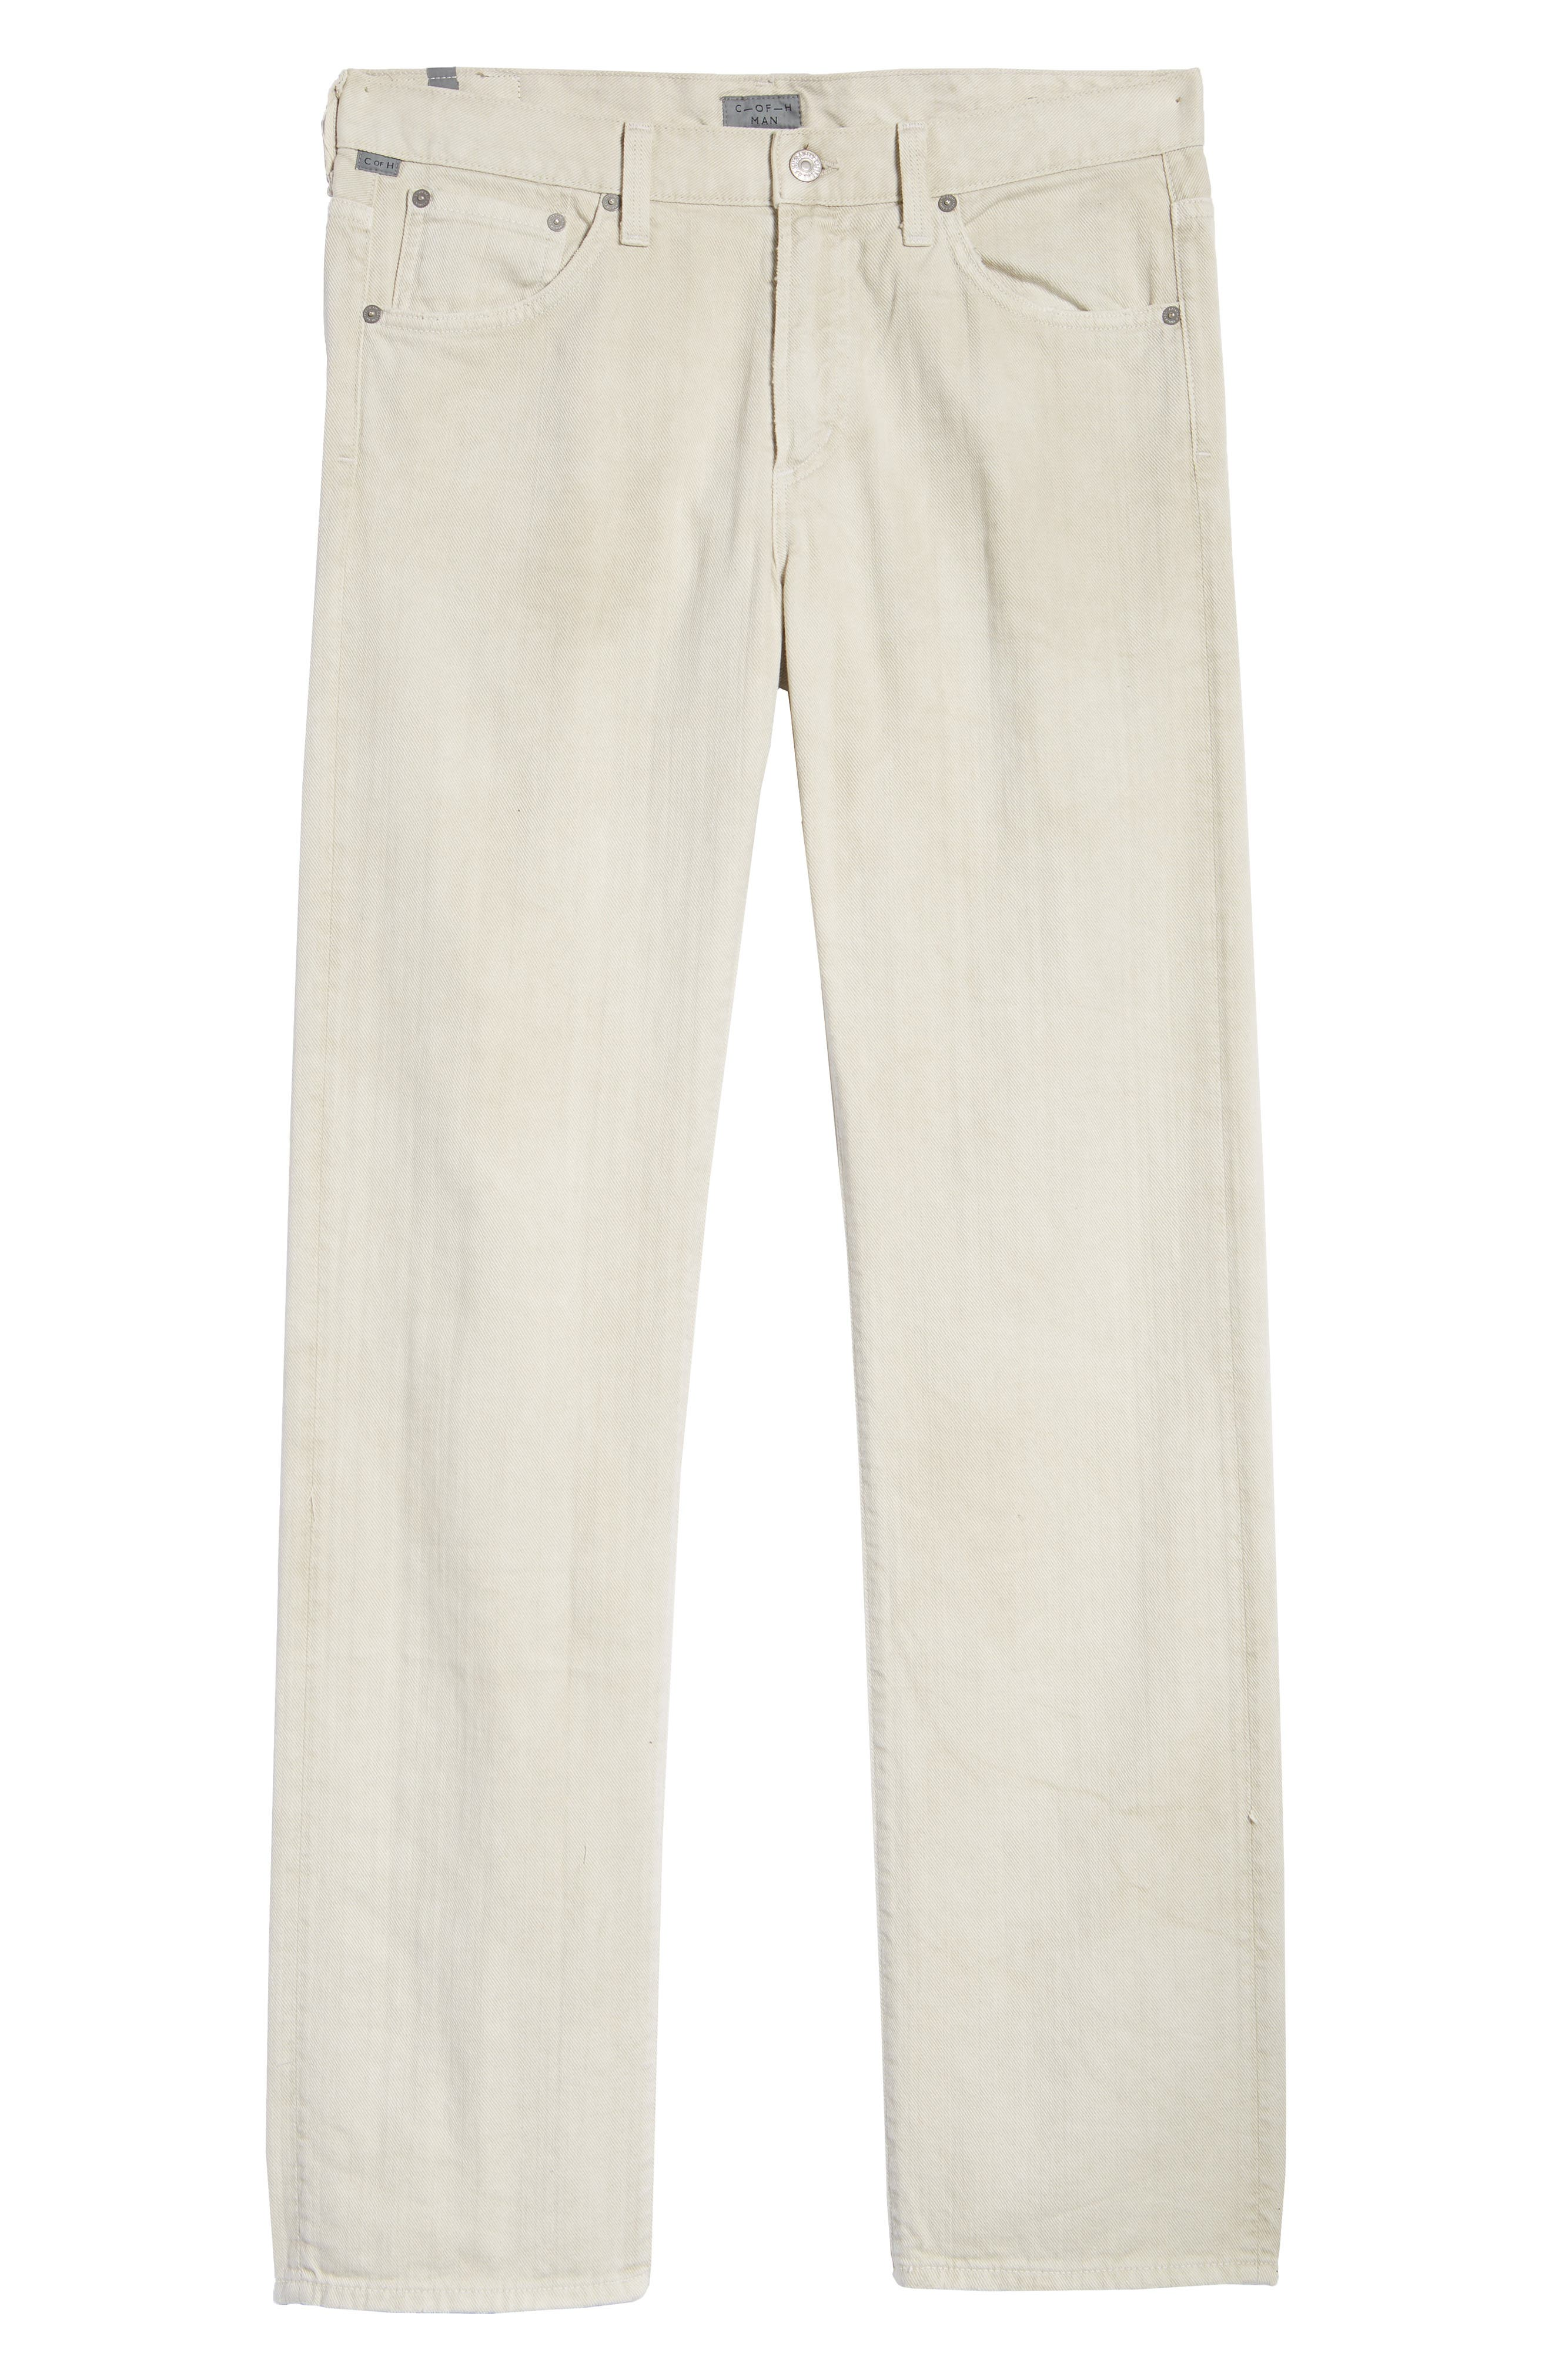 CITIZENS OF HUMANITY,                             Sid Straight Leg Jeans,                             Alternate thumbnail 6, color,                             MODA